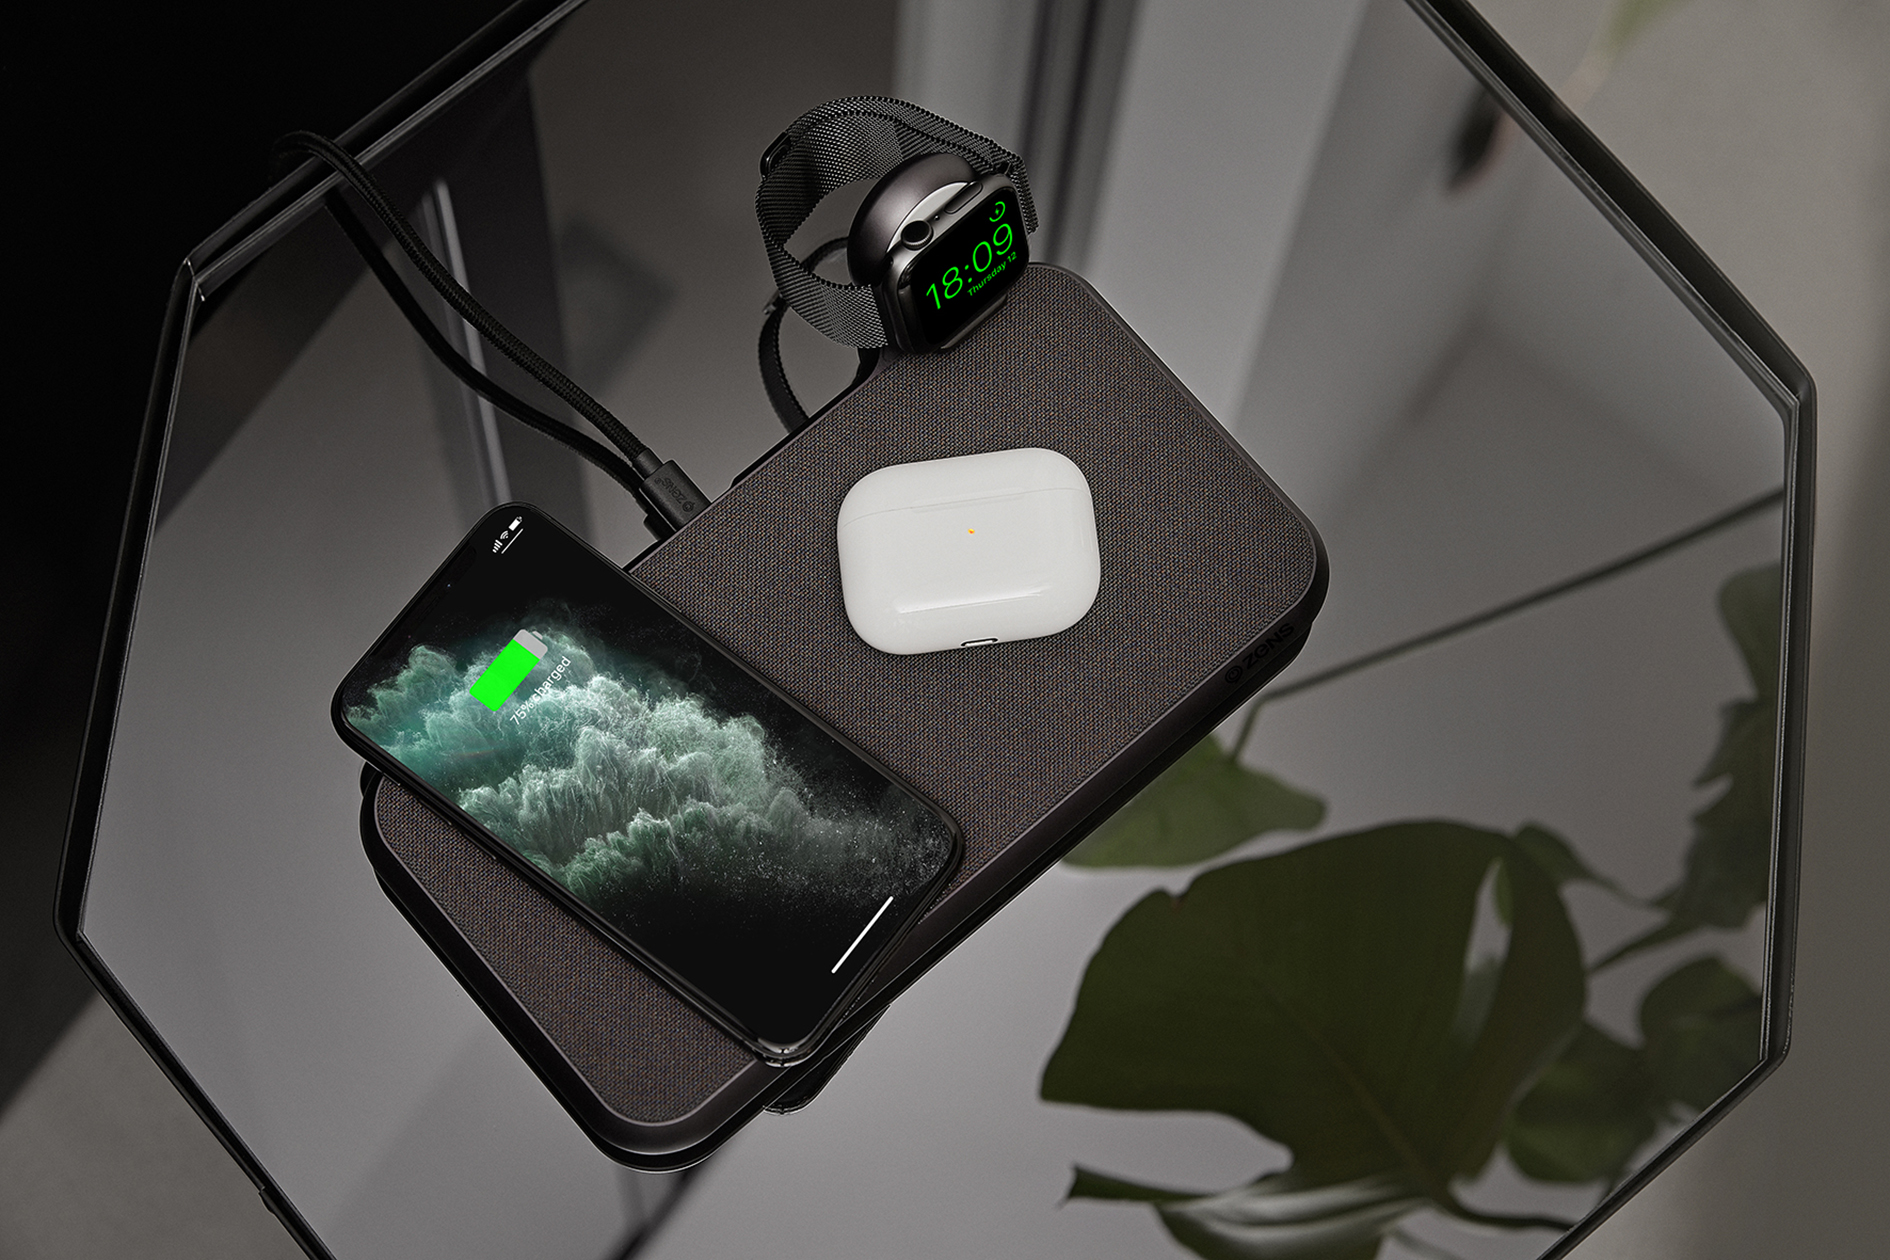 ZENS-Liberty-16-Coils-Wireless-Charger-with-Apple-Watch-USB-stick-Lifestyle-Image-1.jpg